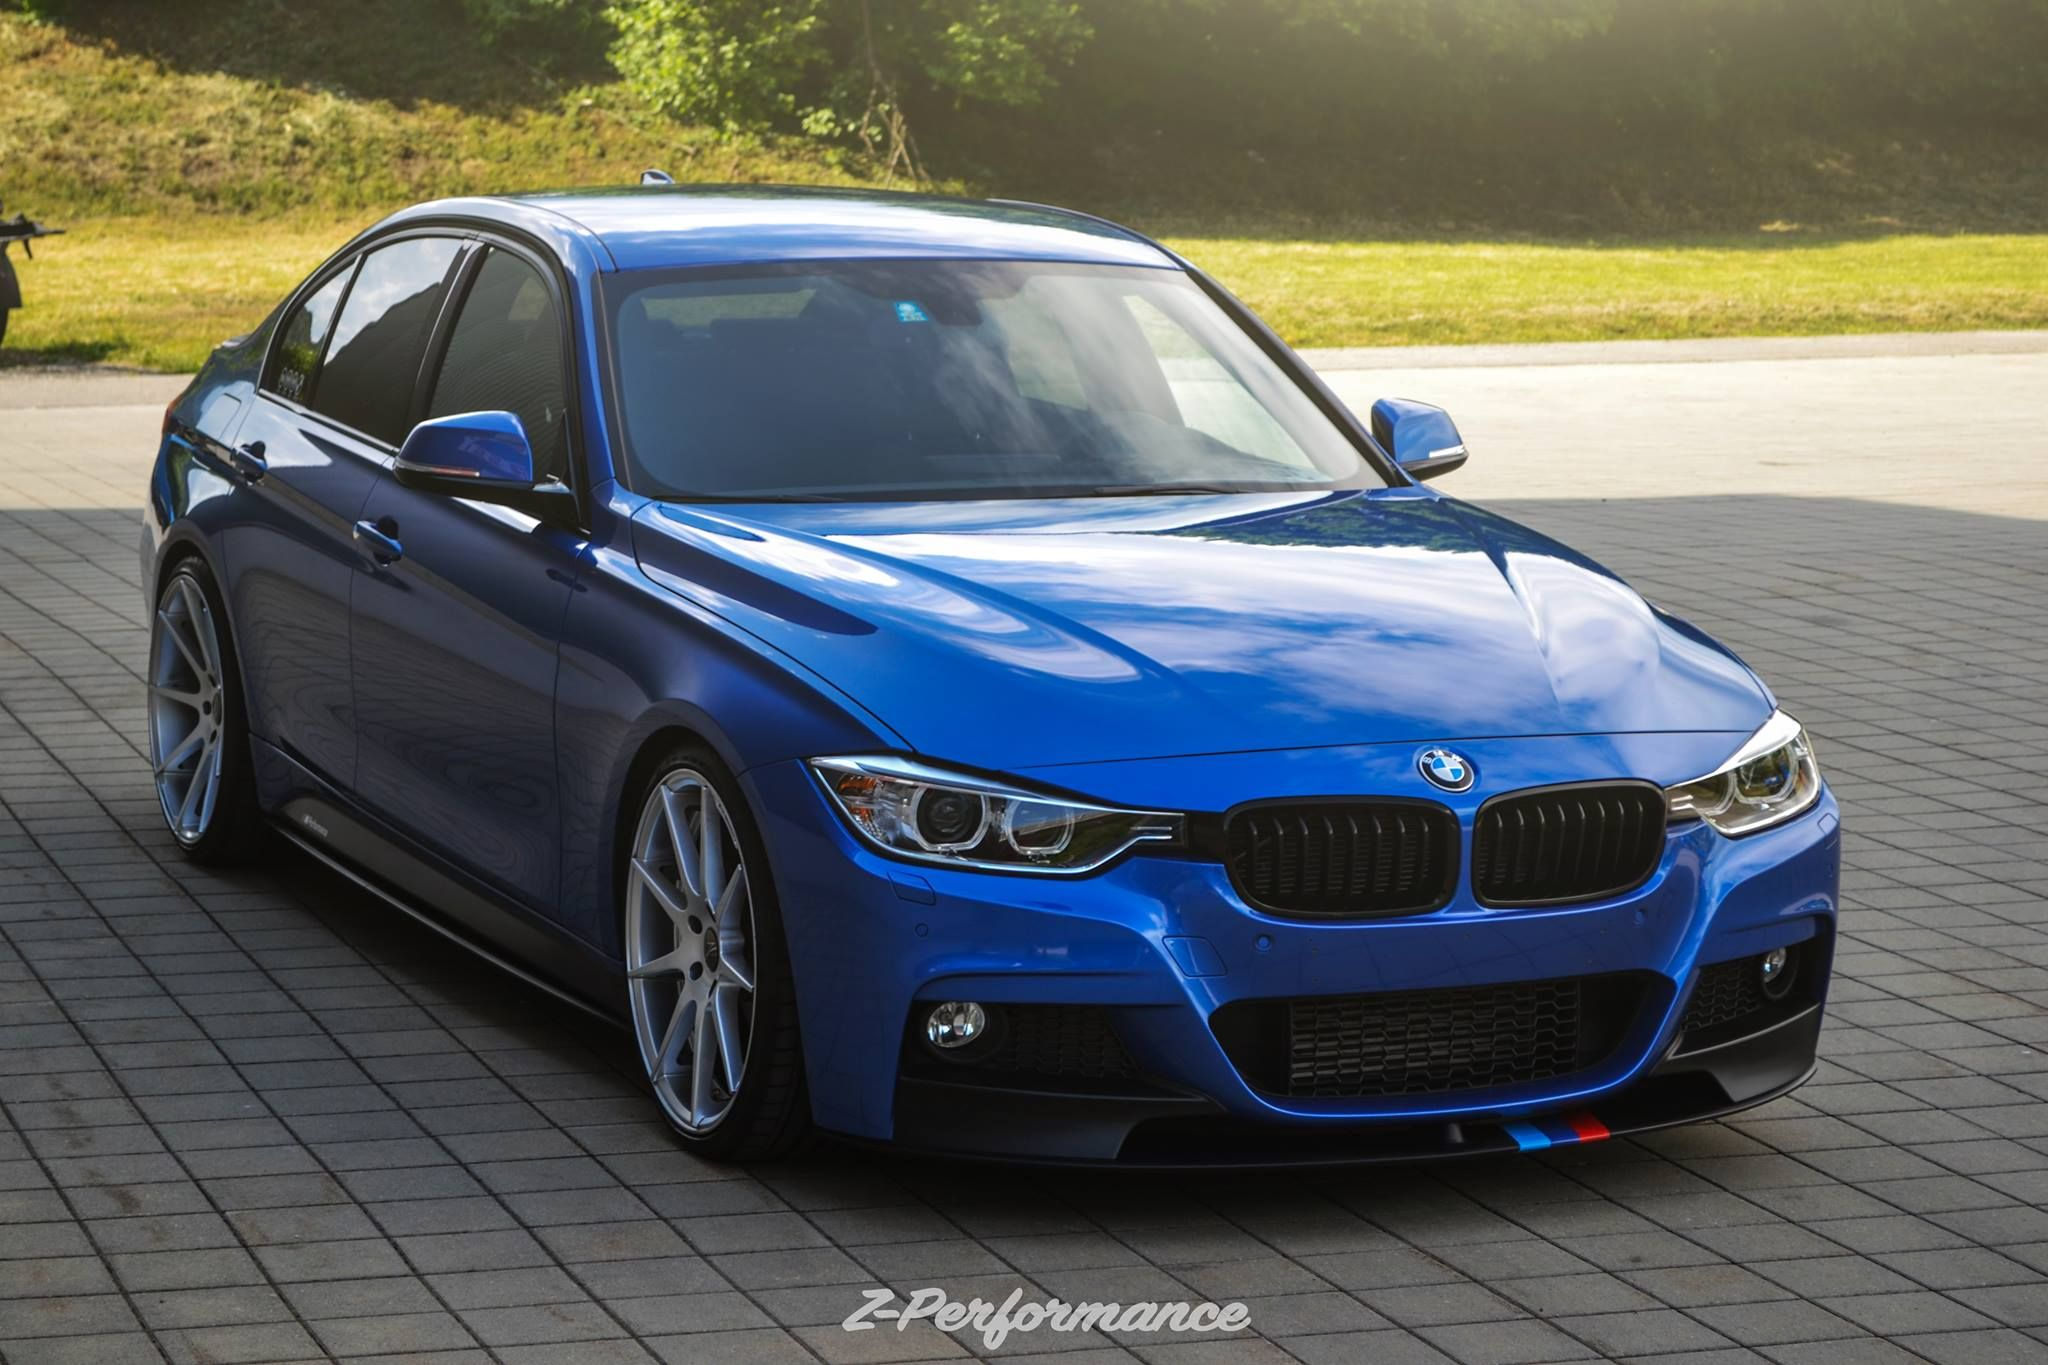 bmw f30 335i sedan mpackage estoril blue bmw f30 3 series sedan pinterest. Black Bedroom Furniture Sets. Home Design Ideas